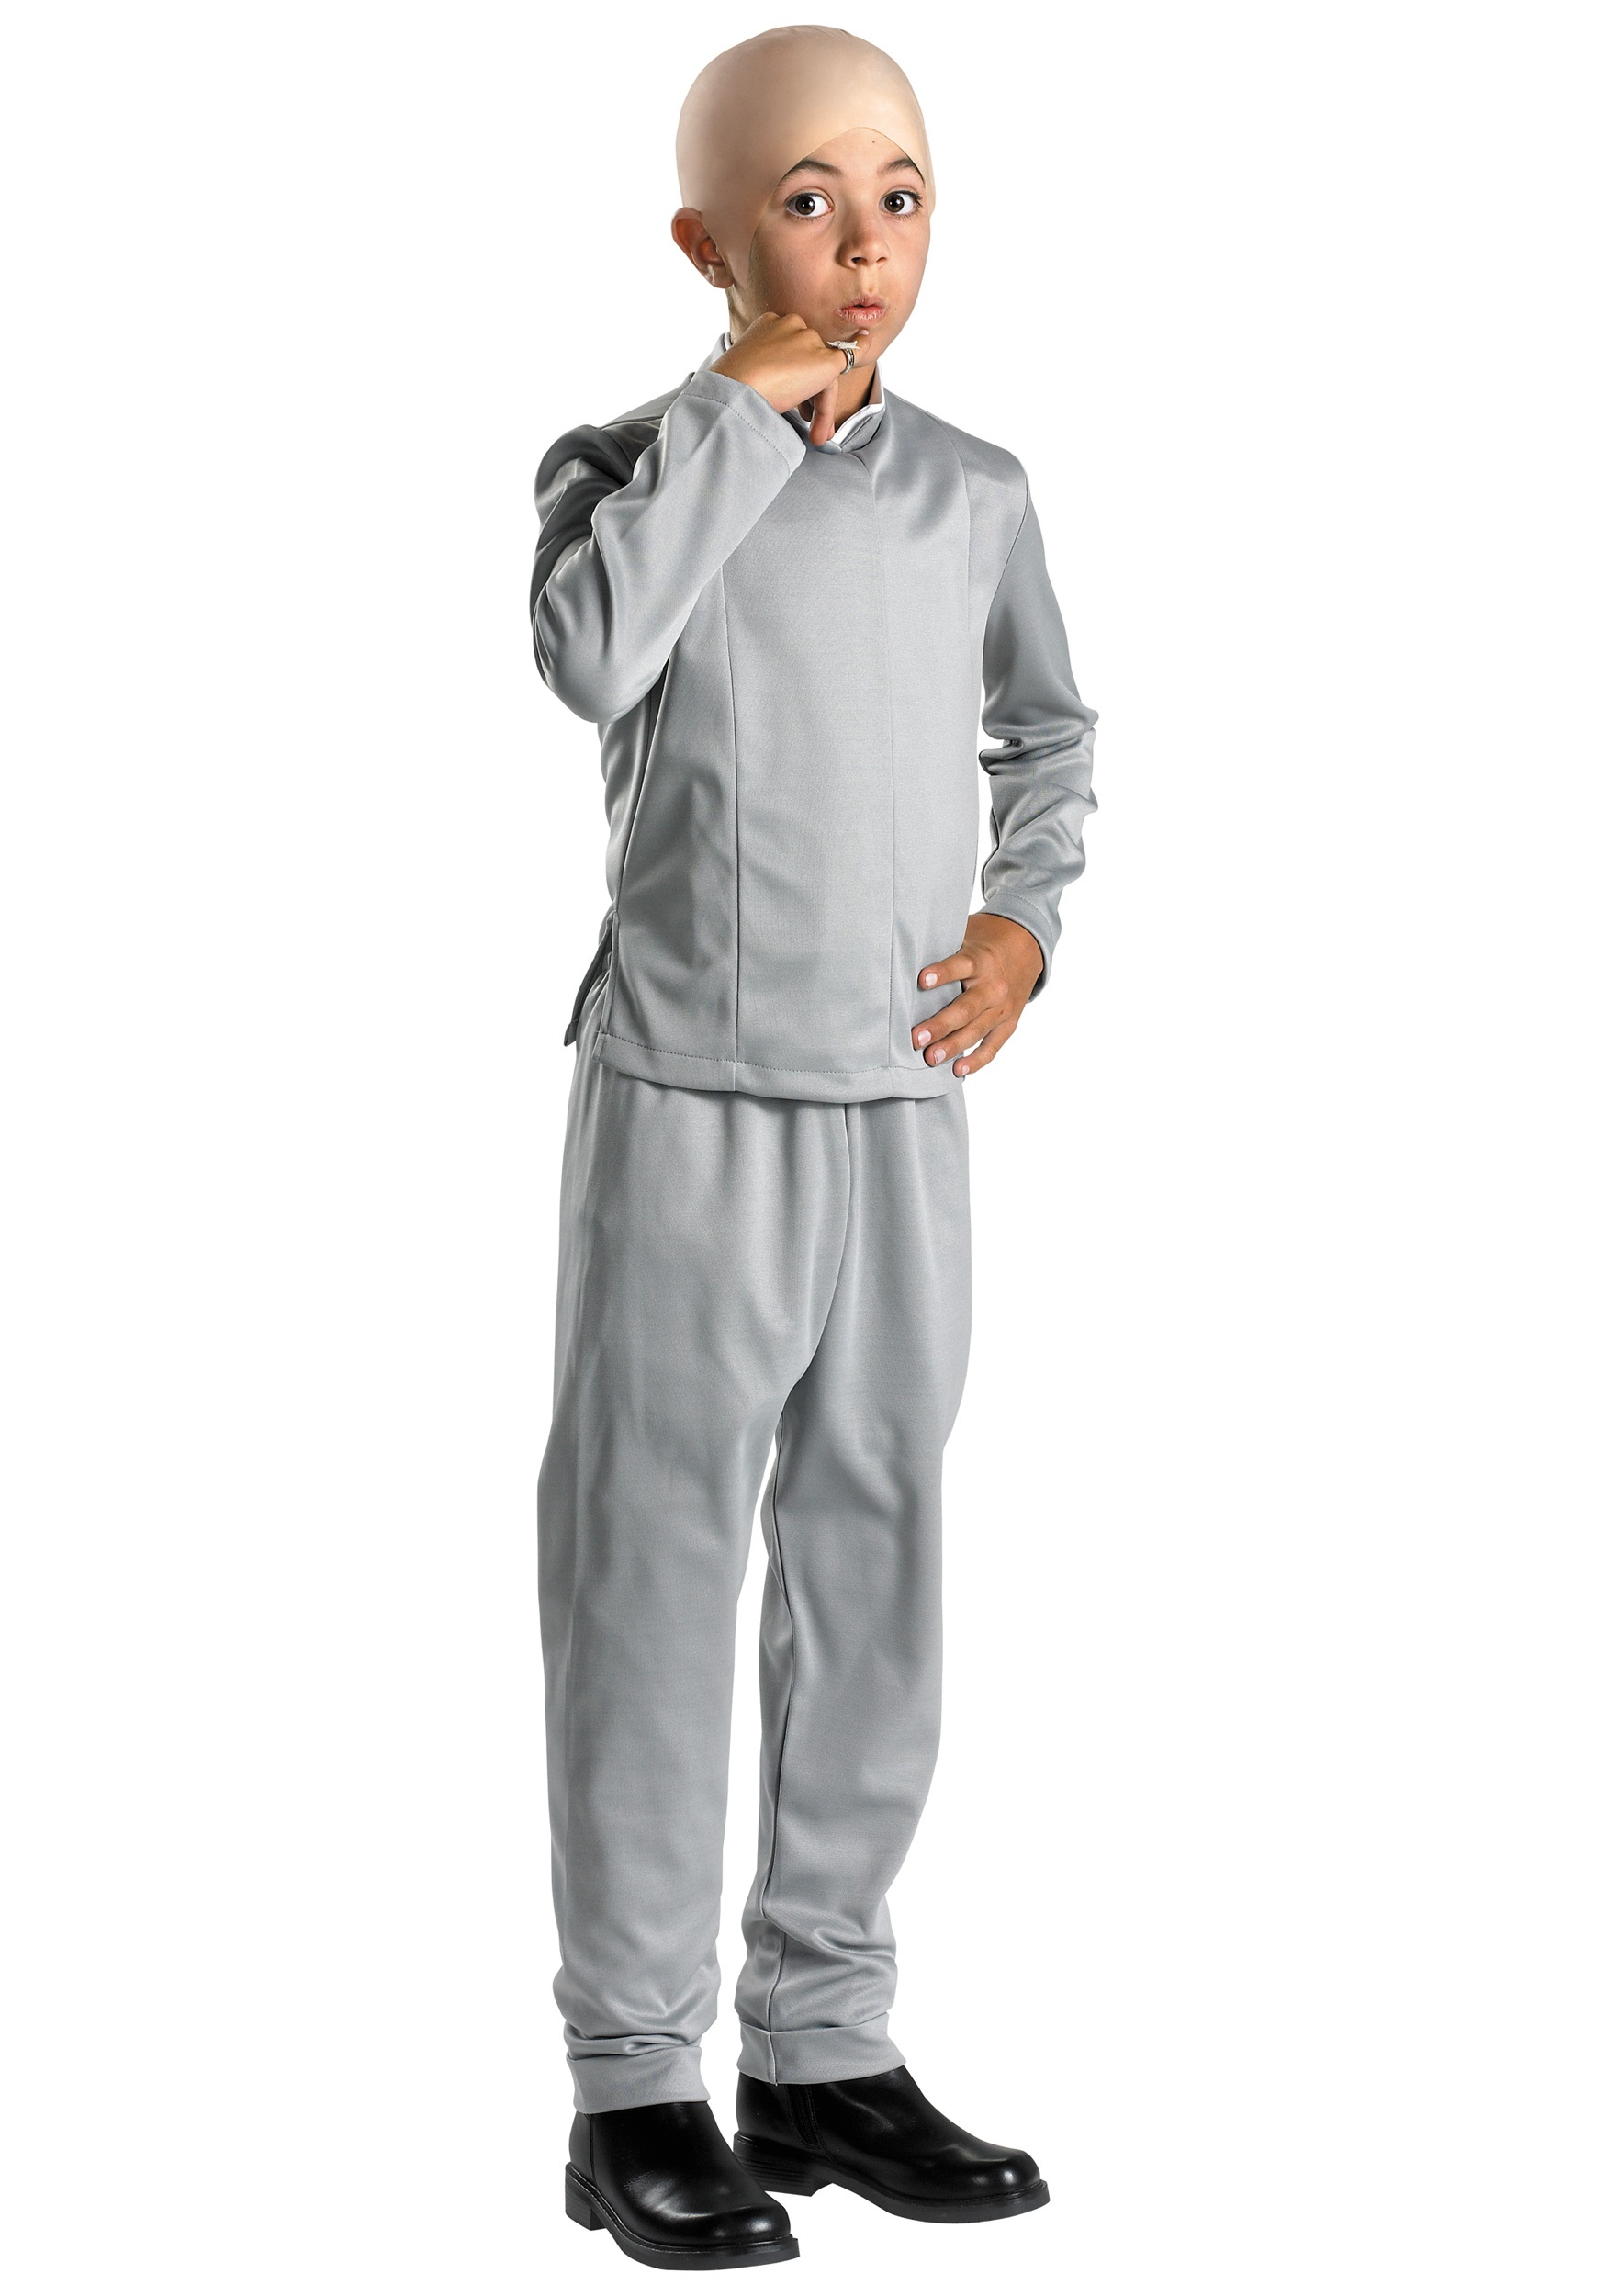 child deluxe dr evil costume - Kids Doctor Halloween Costume